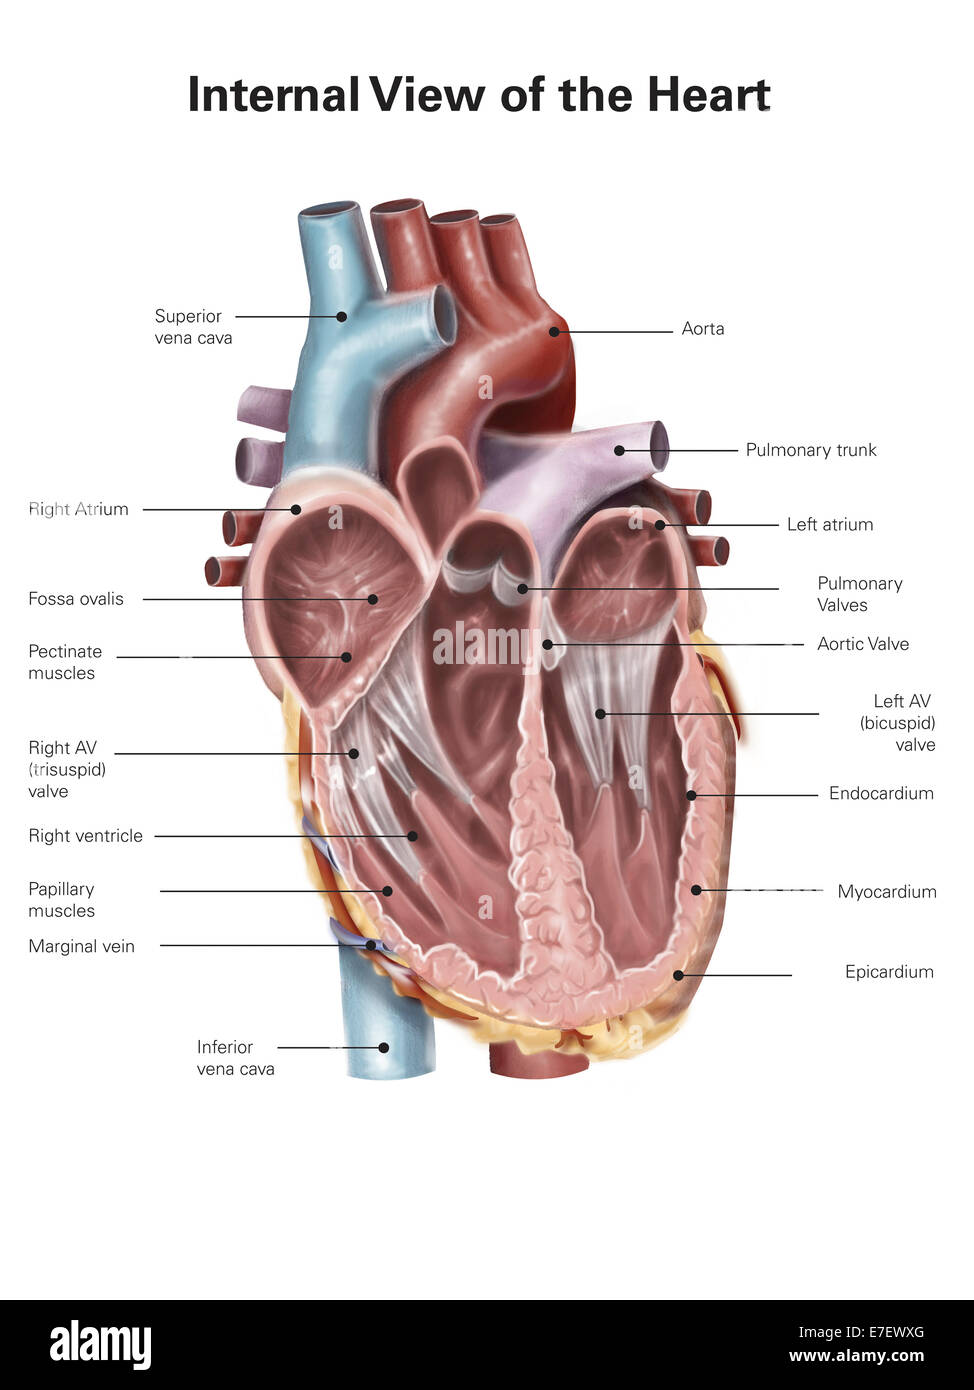 Internal view    of the human       heart    Stock Photo  Royalty Free Image  73471736  Alamy